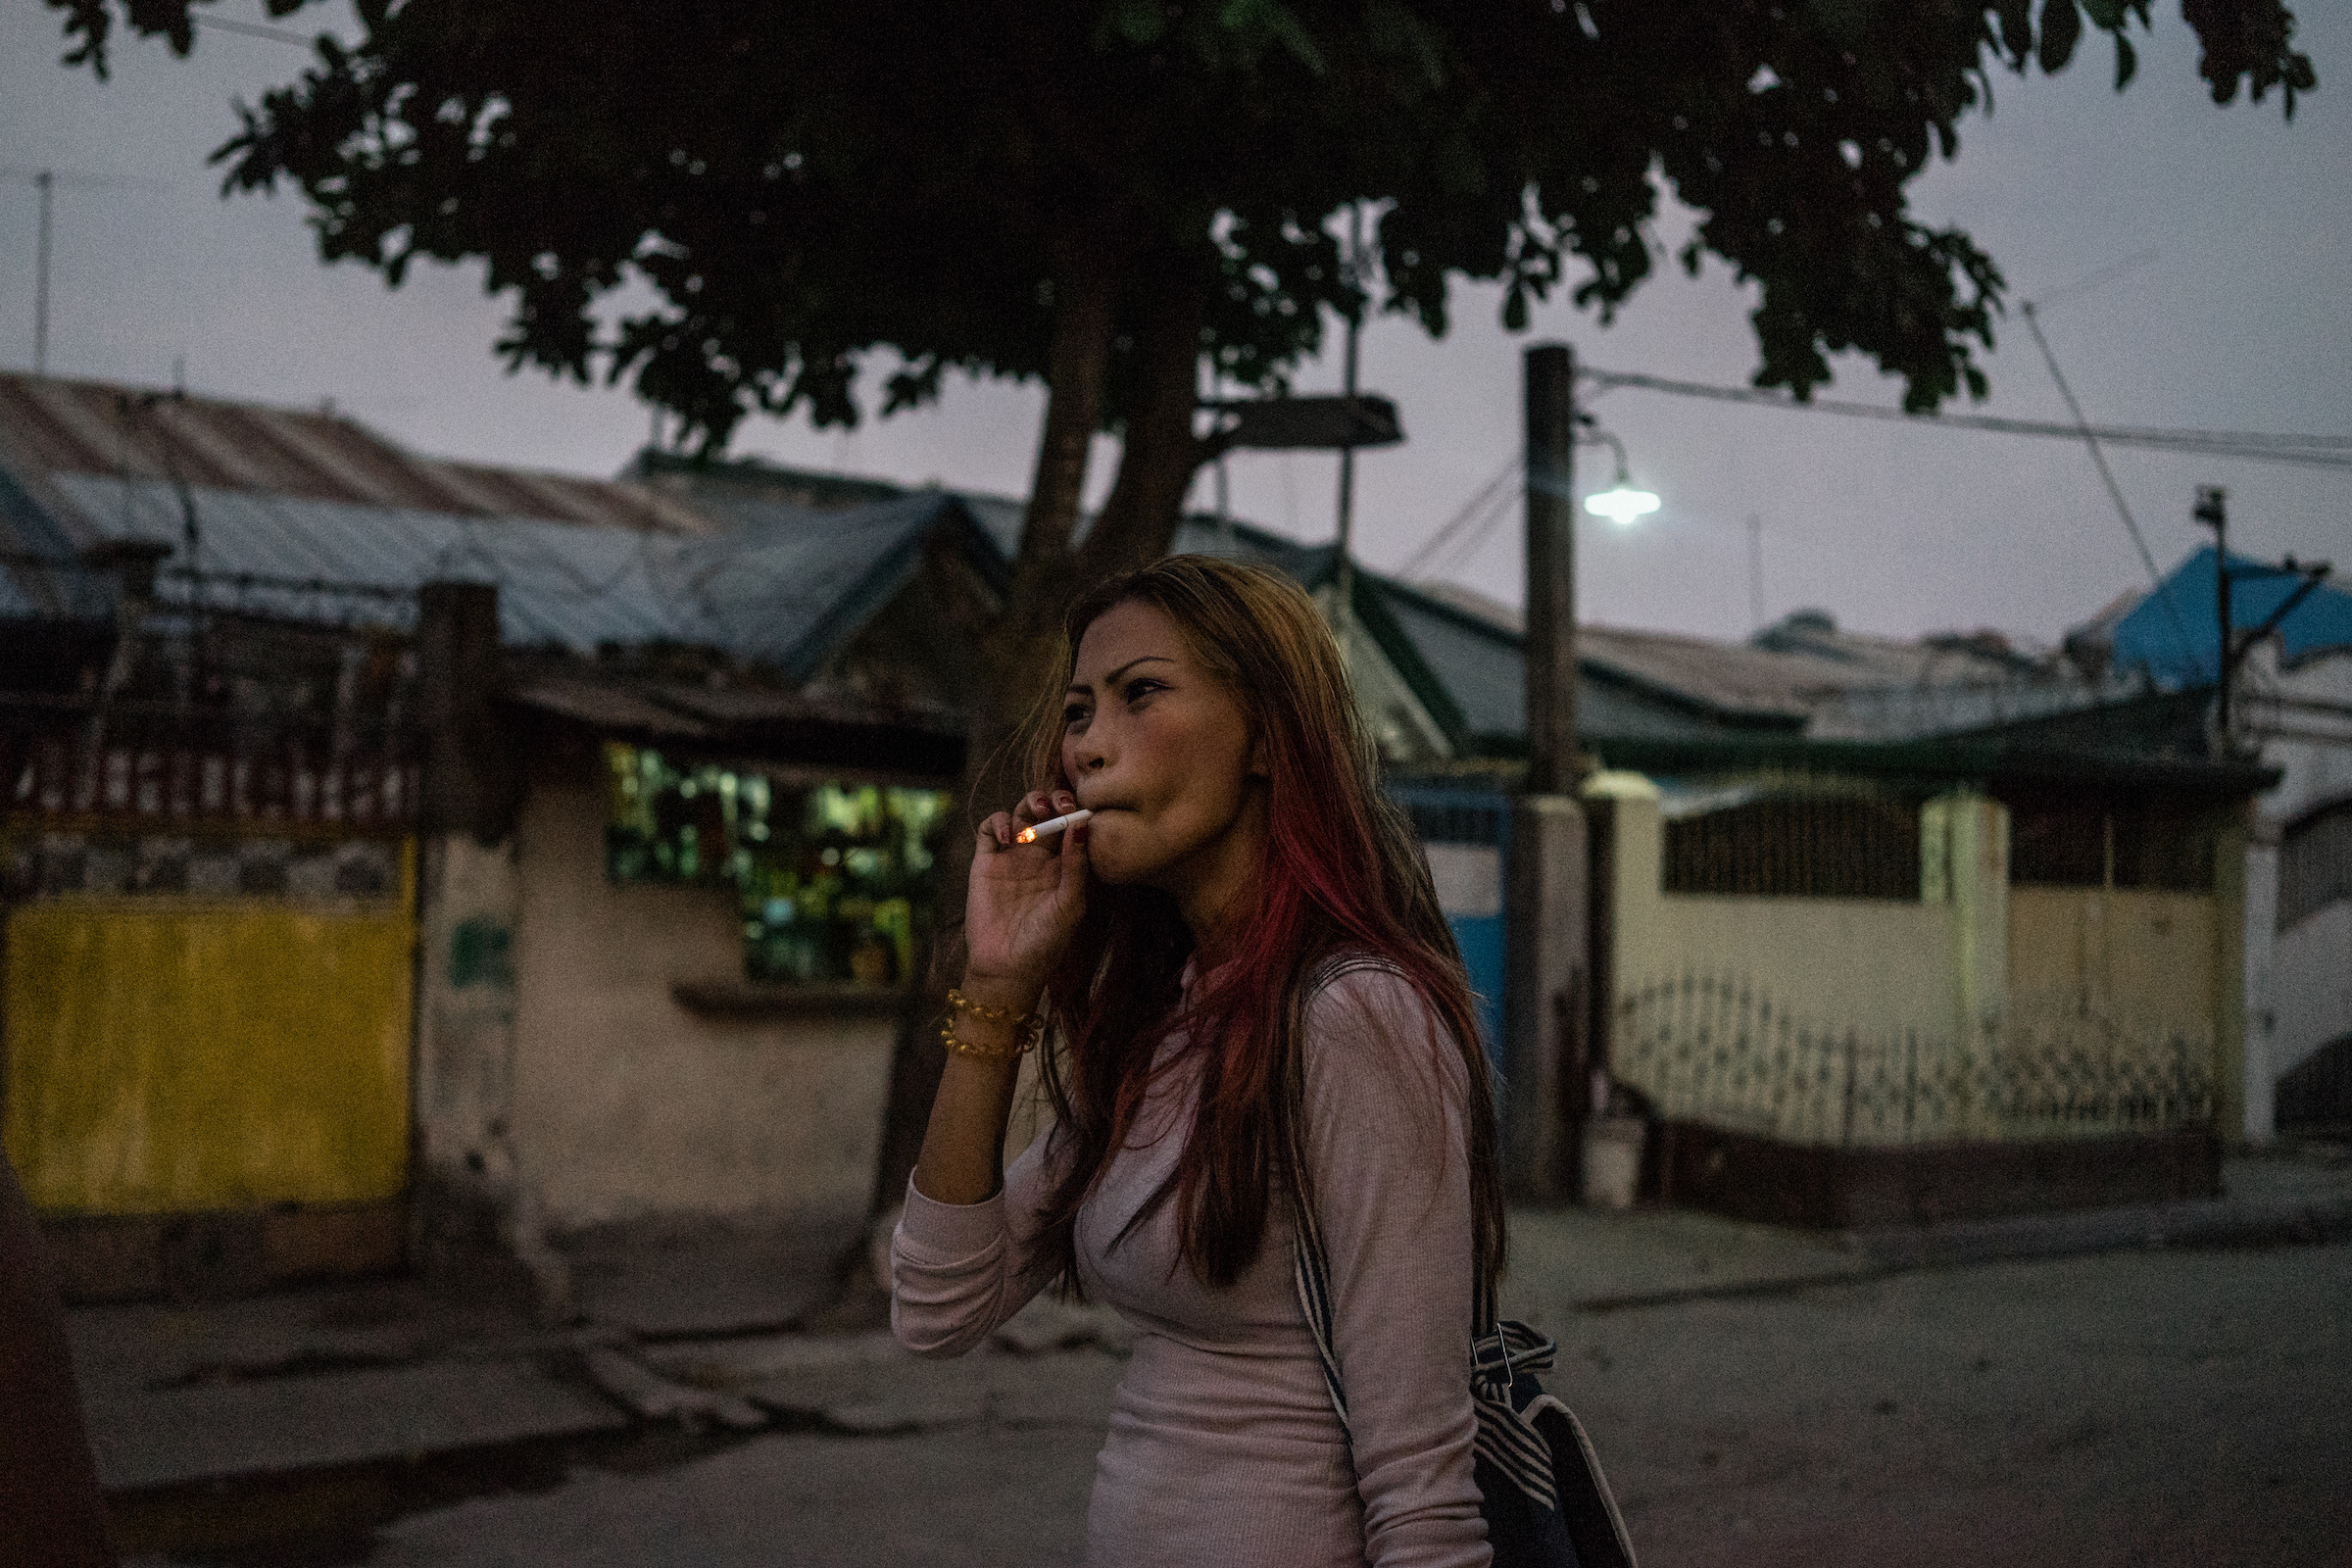 Jojo smokes before a night of work in the bars in Angeles City, known for its red light district. After being displaced from Typhoon Haiyan, Jojo had to go back to work in the red light district shortly after giving birth. In the wake of typhoons, women and girls from areas vulnerable to natural disasters, particularly Eastern Visayas, are driven into the sex trade amidst constant displacement from storms.